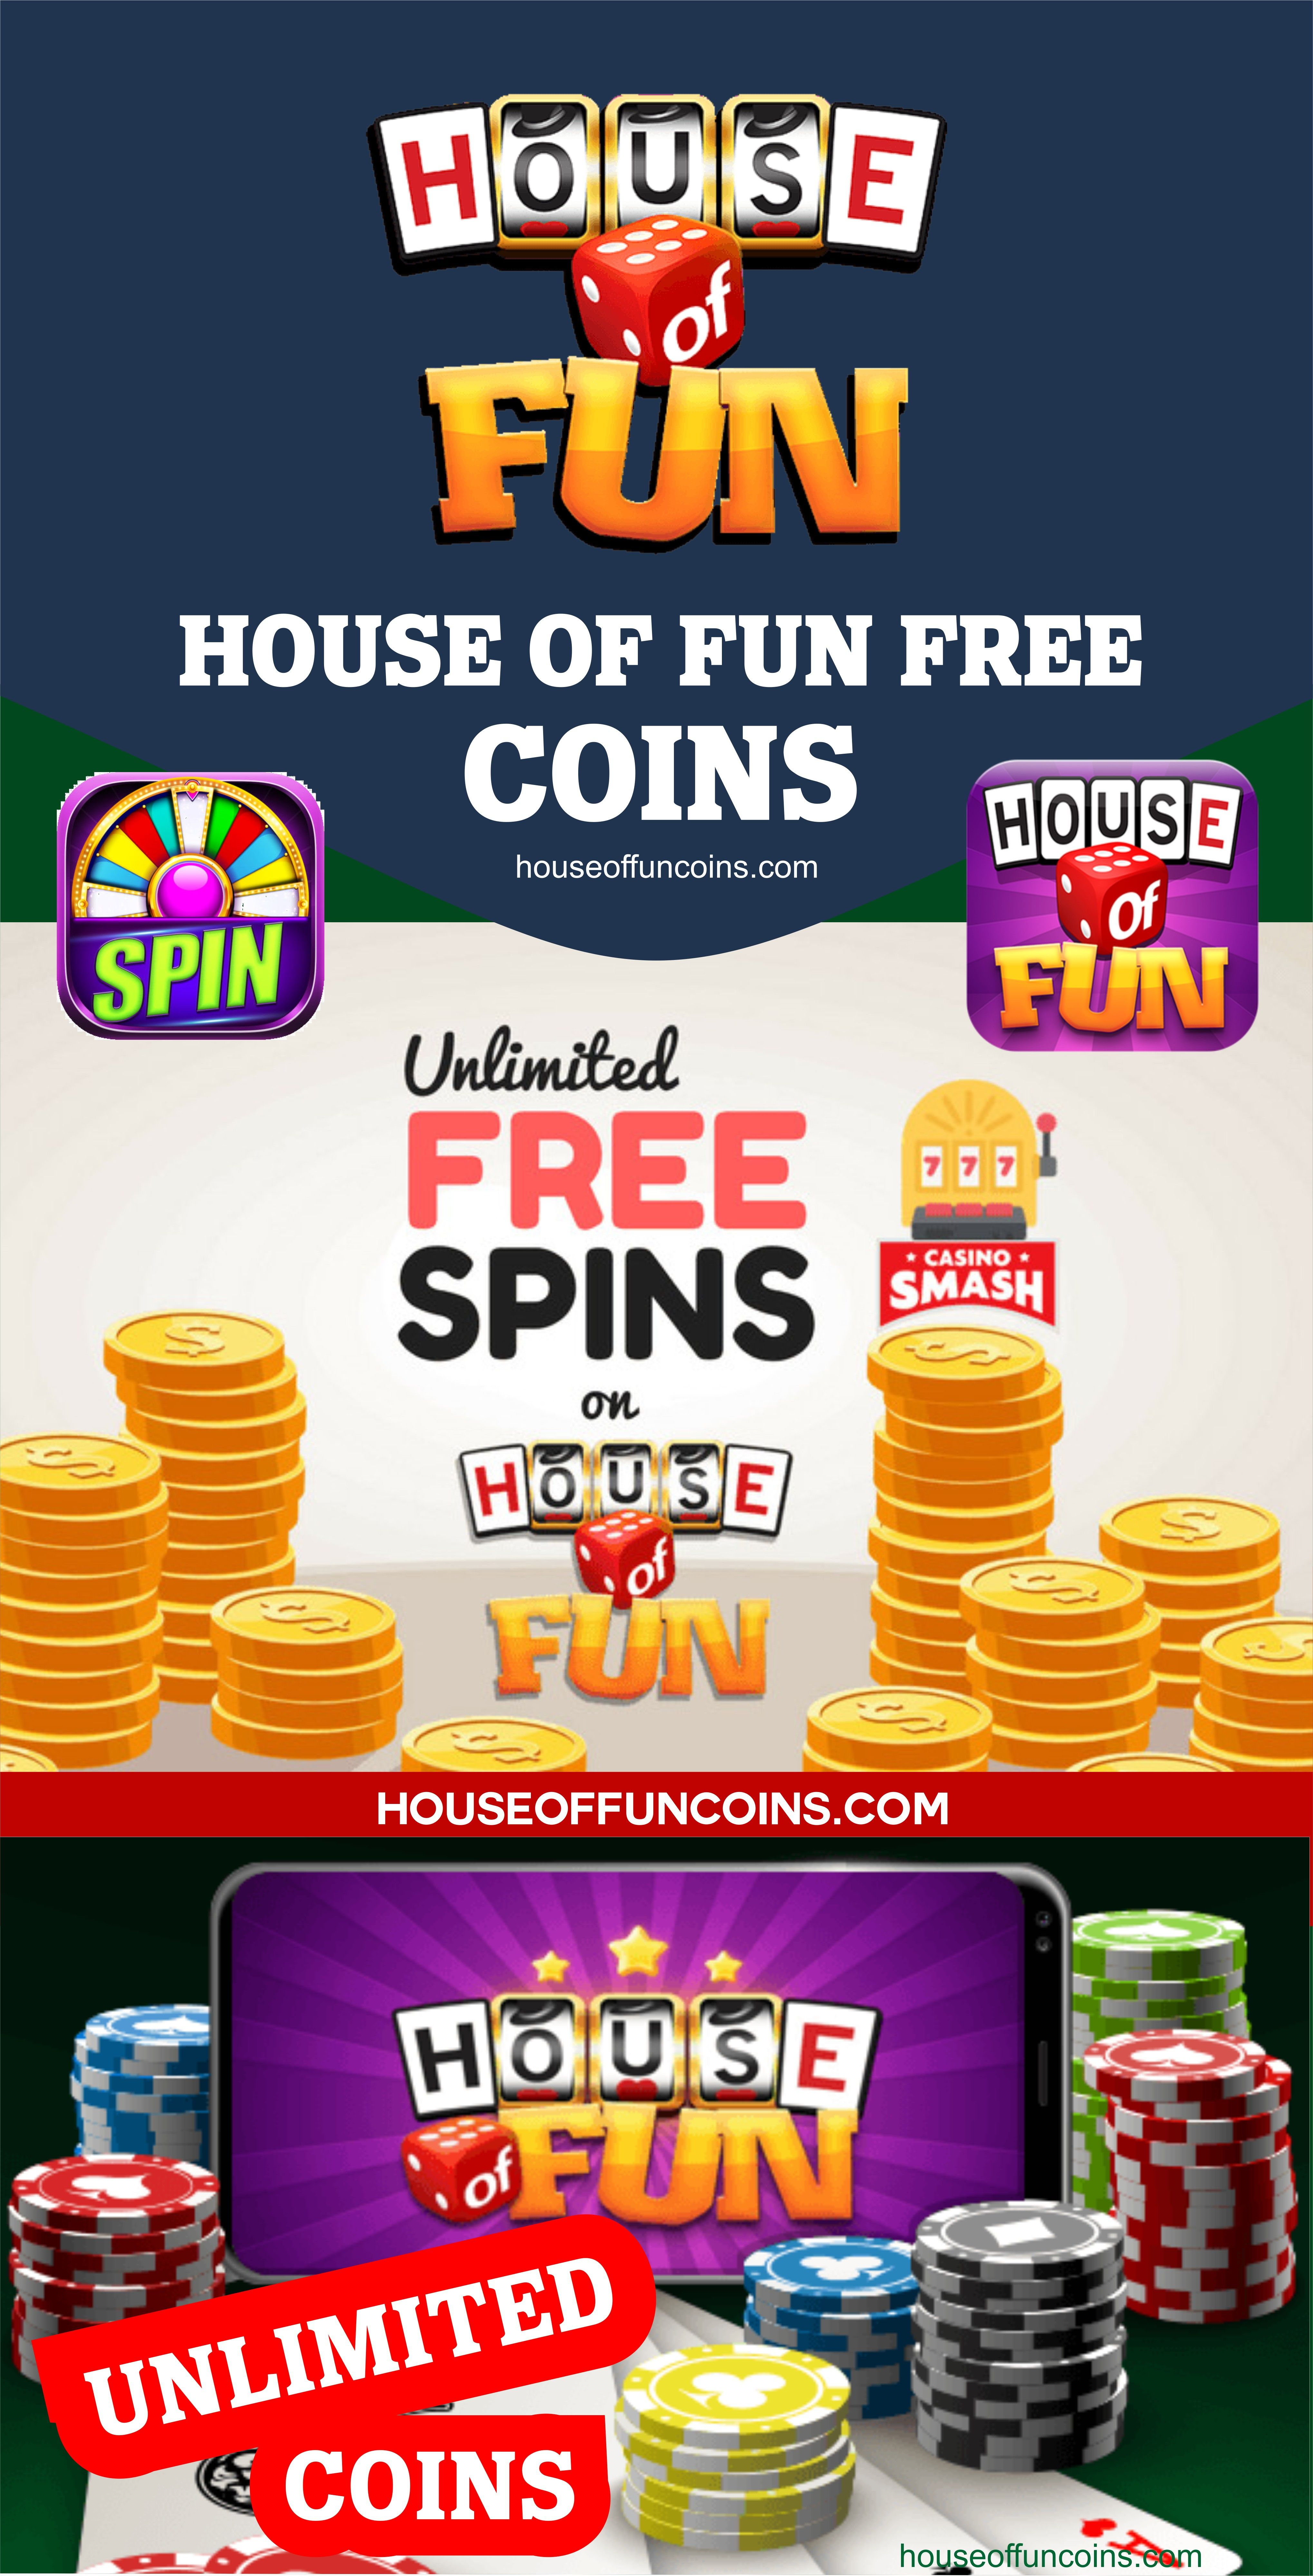 Free Coins House Of Fun Slot Freebies : coins, house, freebies, House, Coins, Spins, Slots, Coins,, Games